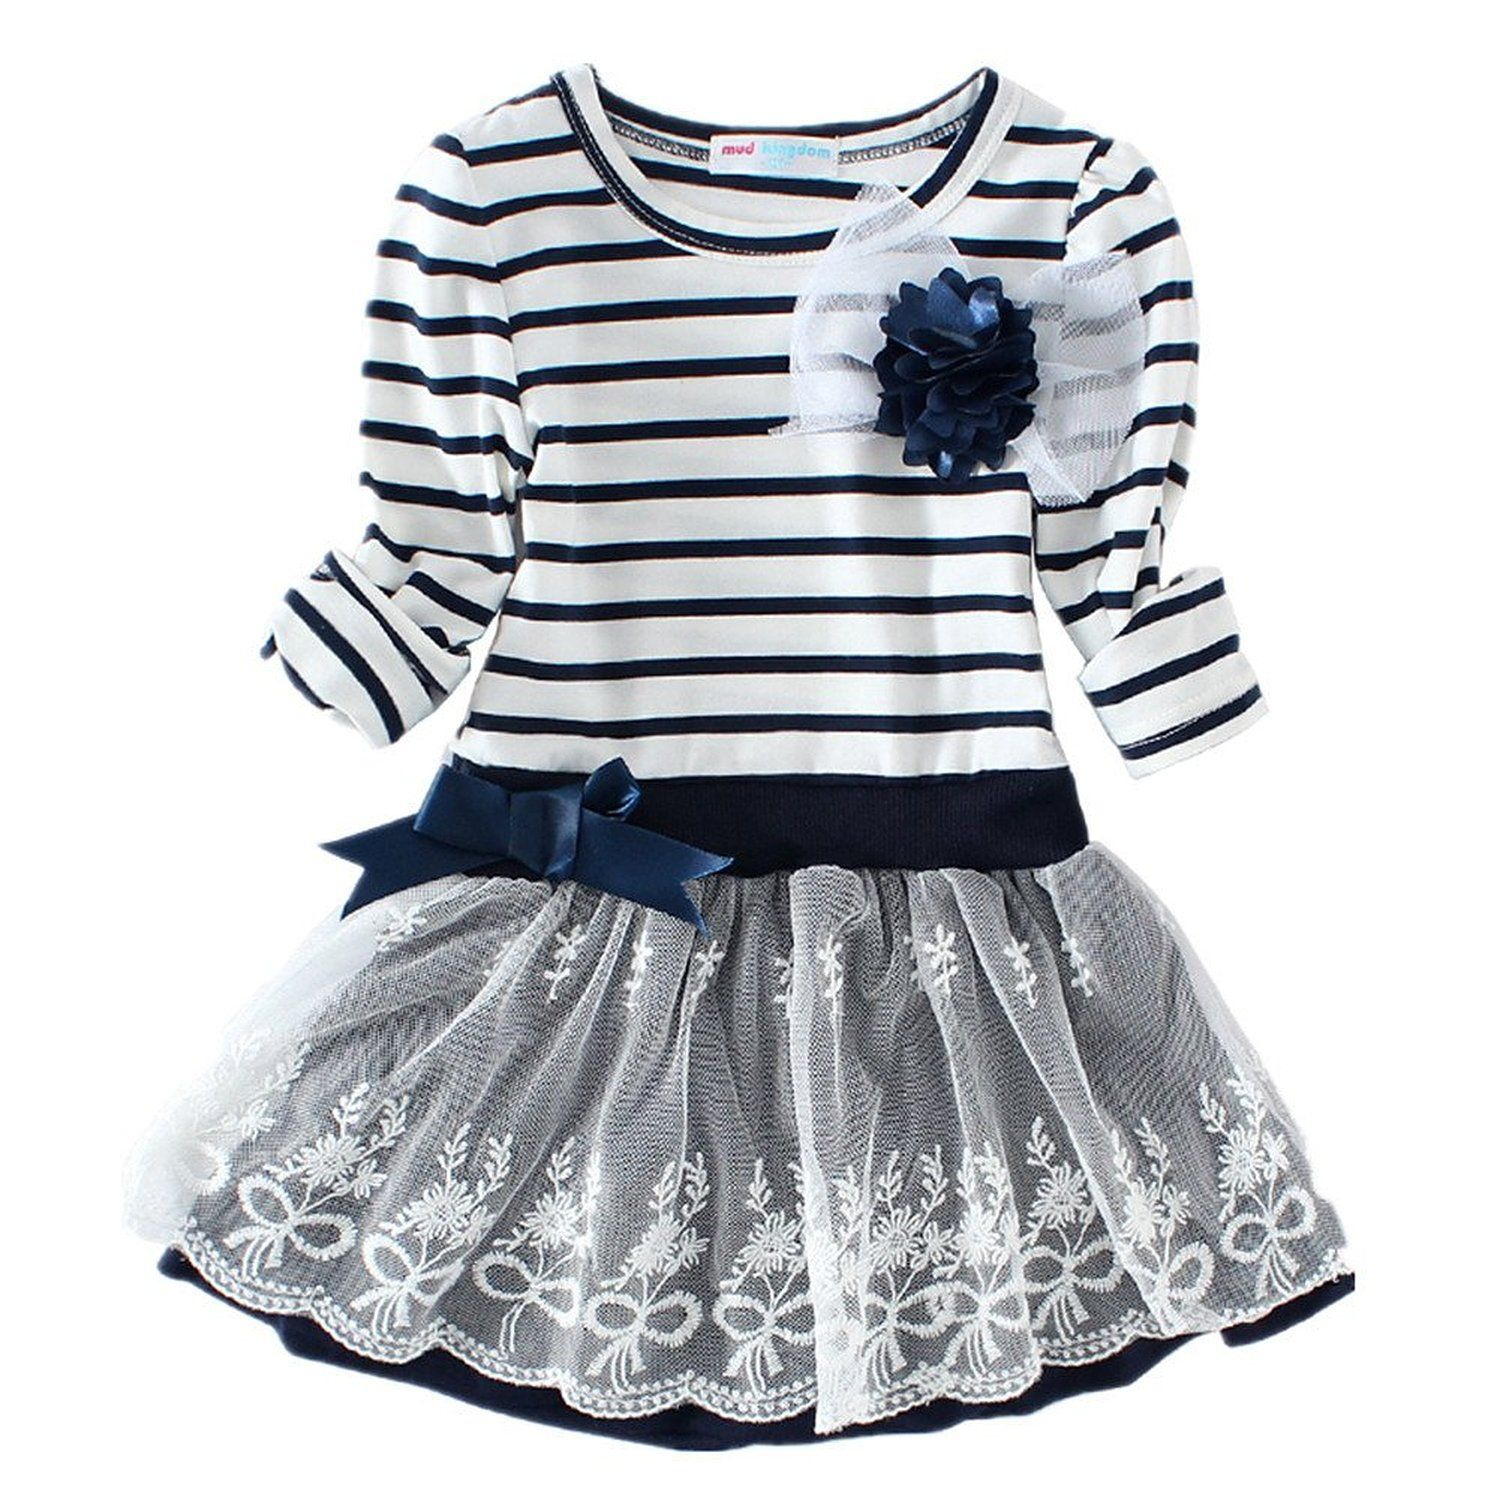 Littlespring little girlsu dress striped flower long sleeve size t